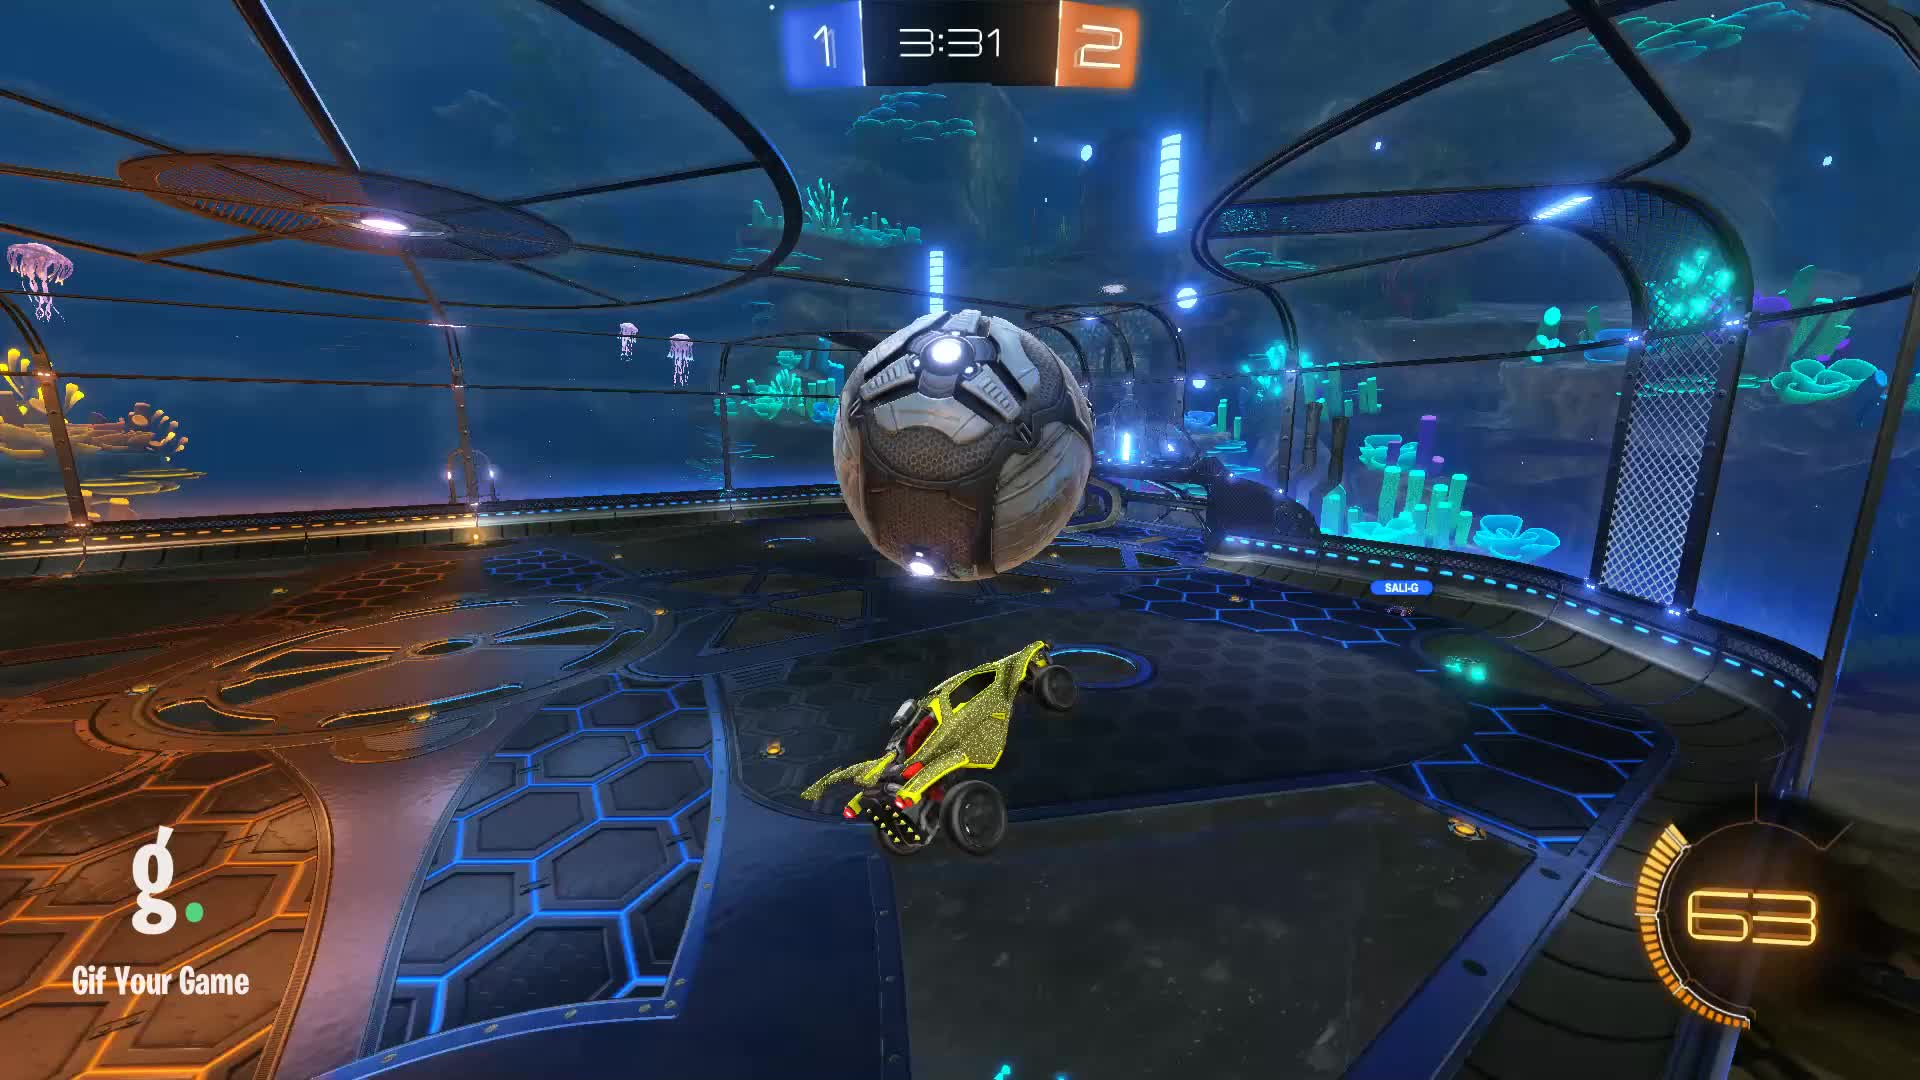 Gif Your Game, GifYourGame, Goal, Rocket League, RocketLeague, t., Goal 4: t. GIFs